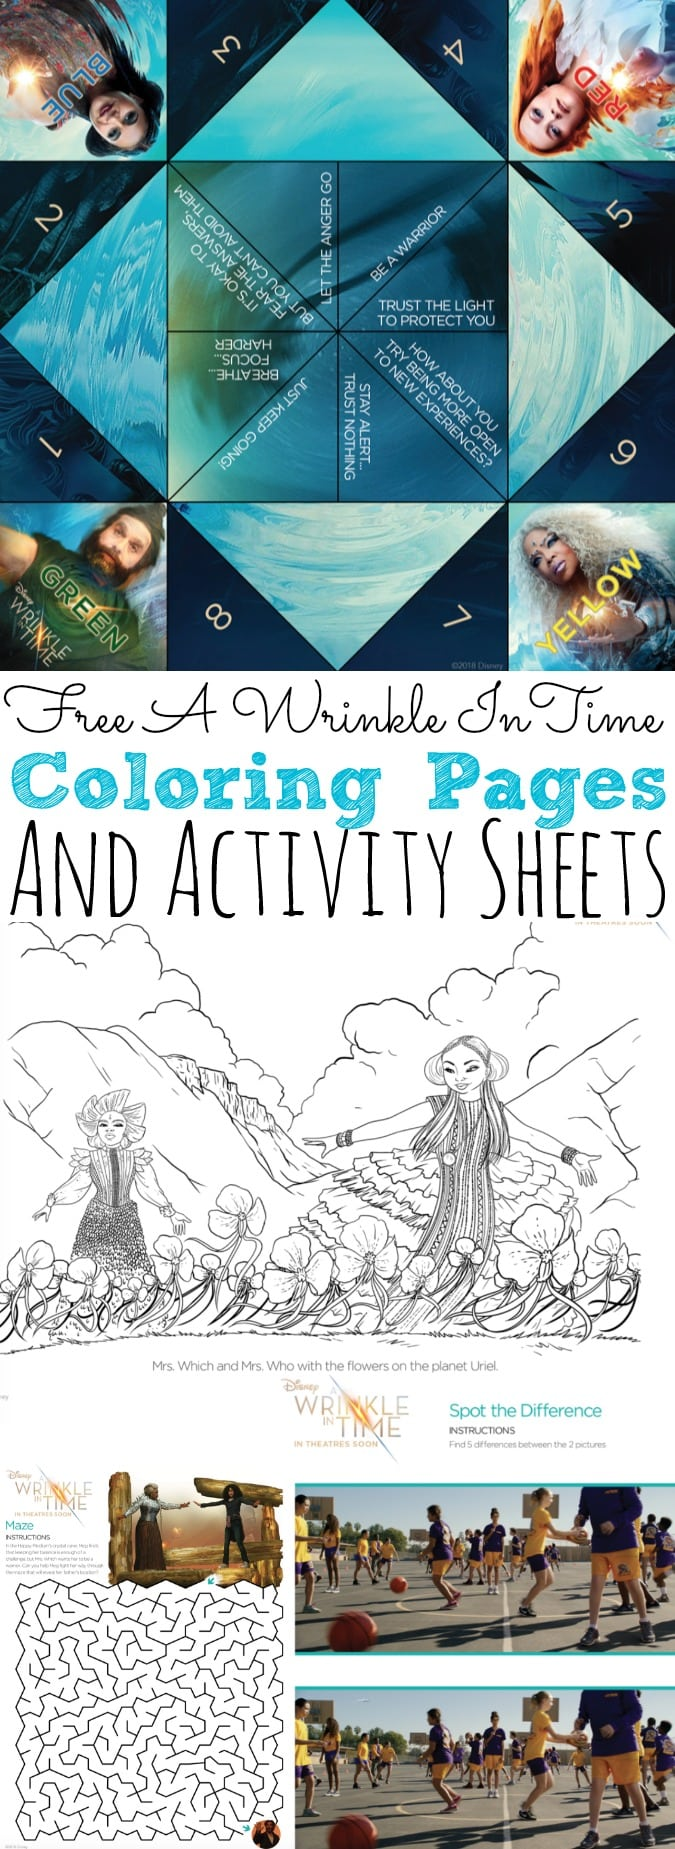 Free A Wrinkle In Time Coloring Pages and Activity Sheets - simplytodaylife.com